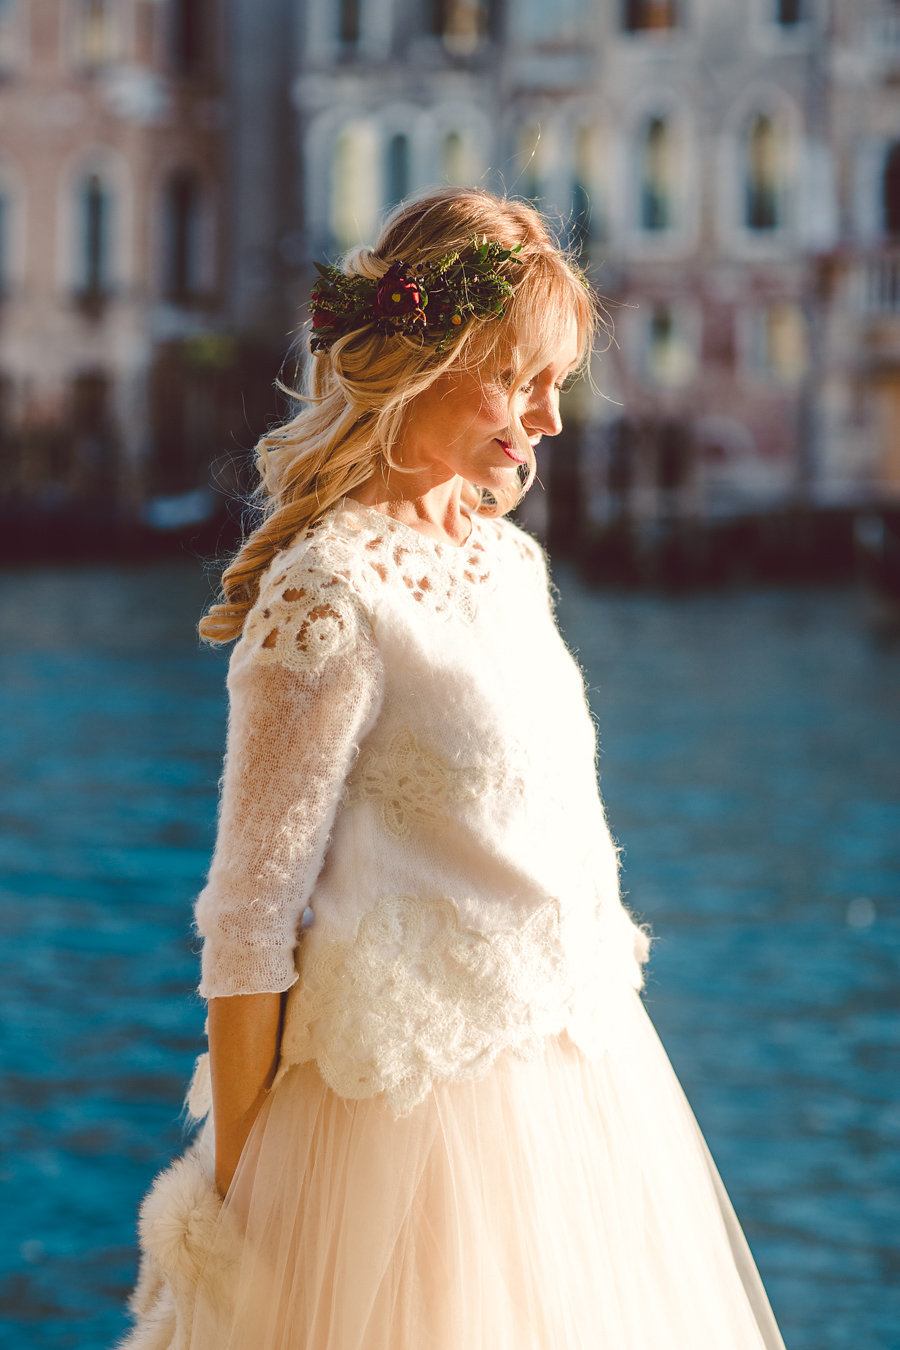 a bridal separate with a warm white top with crochet lace and a layered skirt